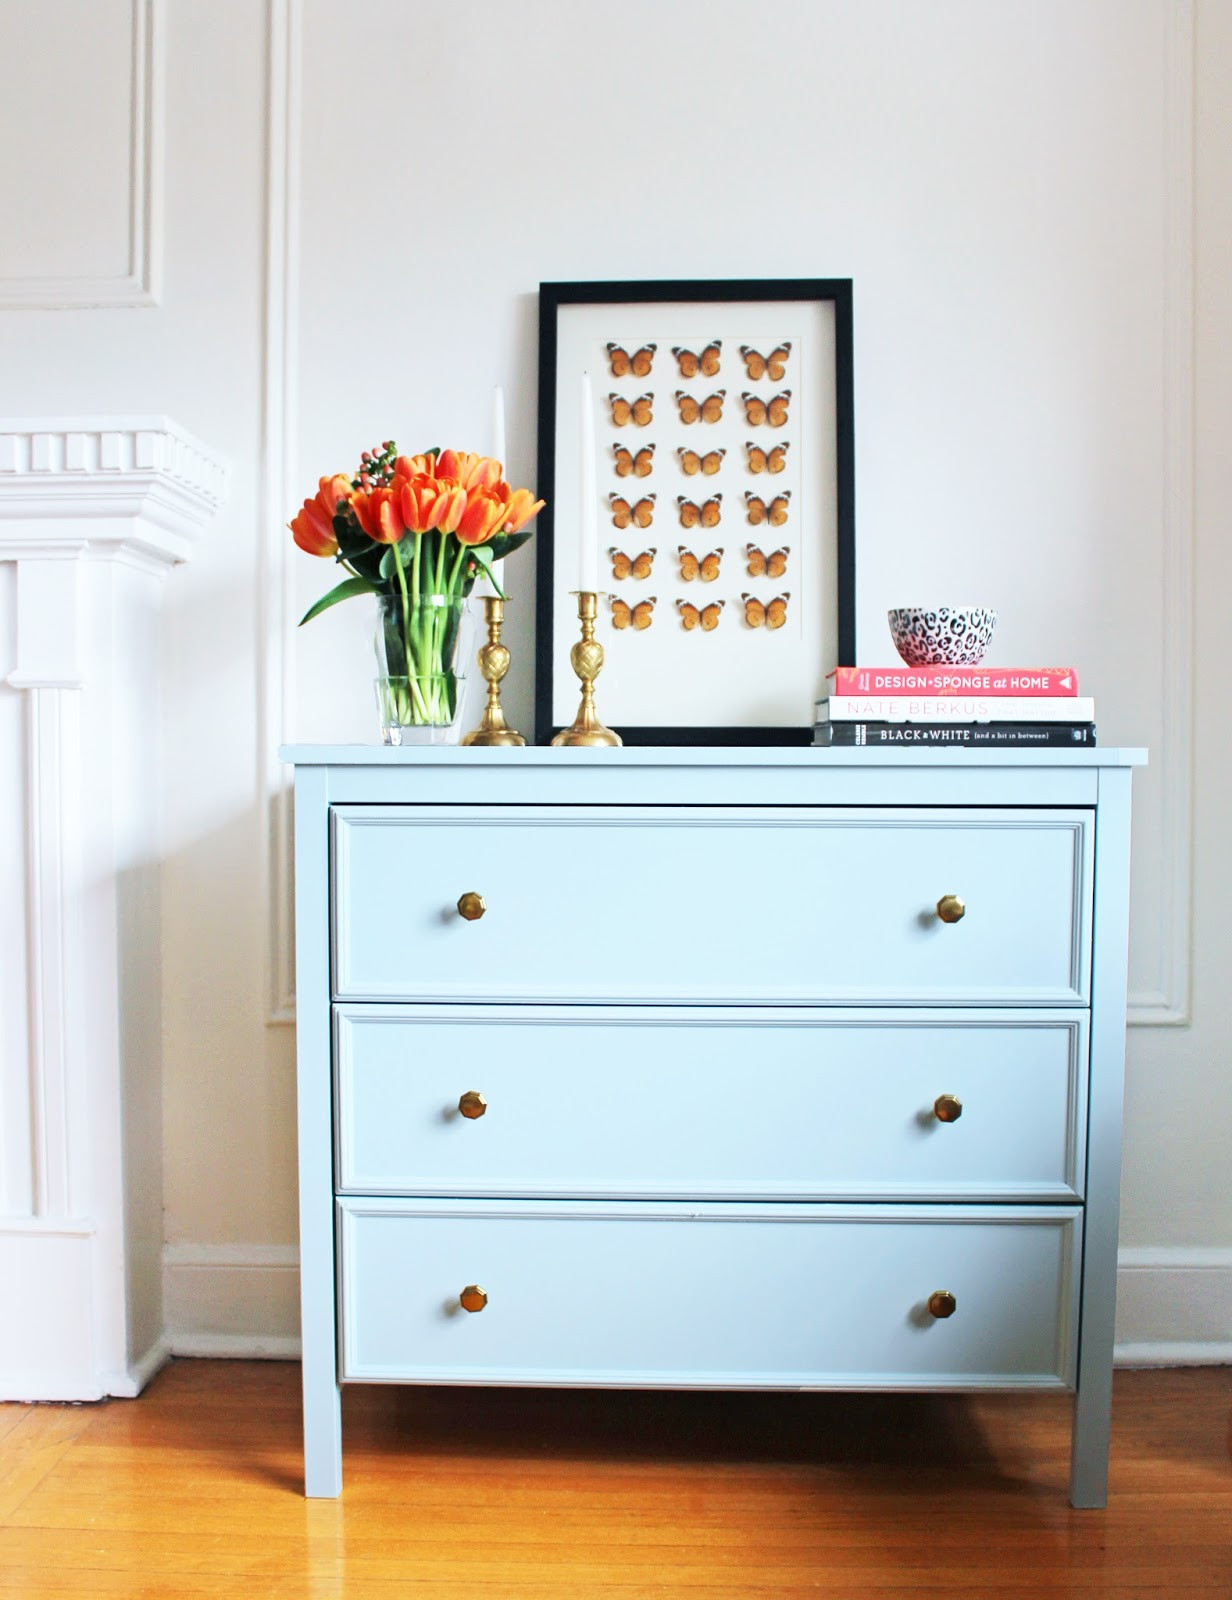 Best ideas about DIY Chest Of Drawers . Save or Pin Tiffany Leigh Interior Design DIY Ikea Hack Chest of Drawers Now.